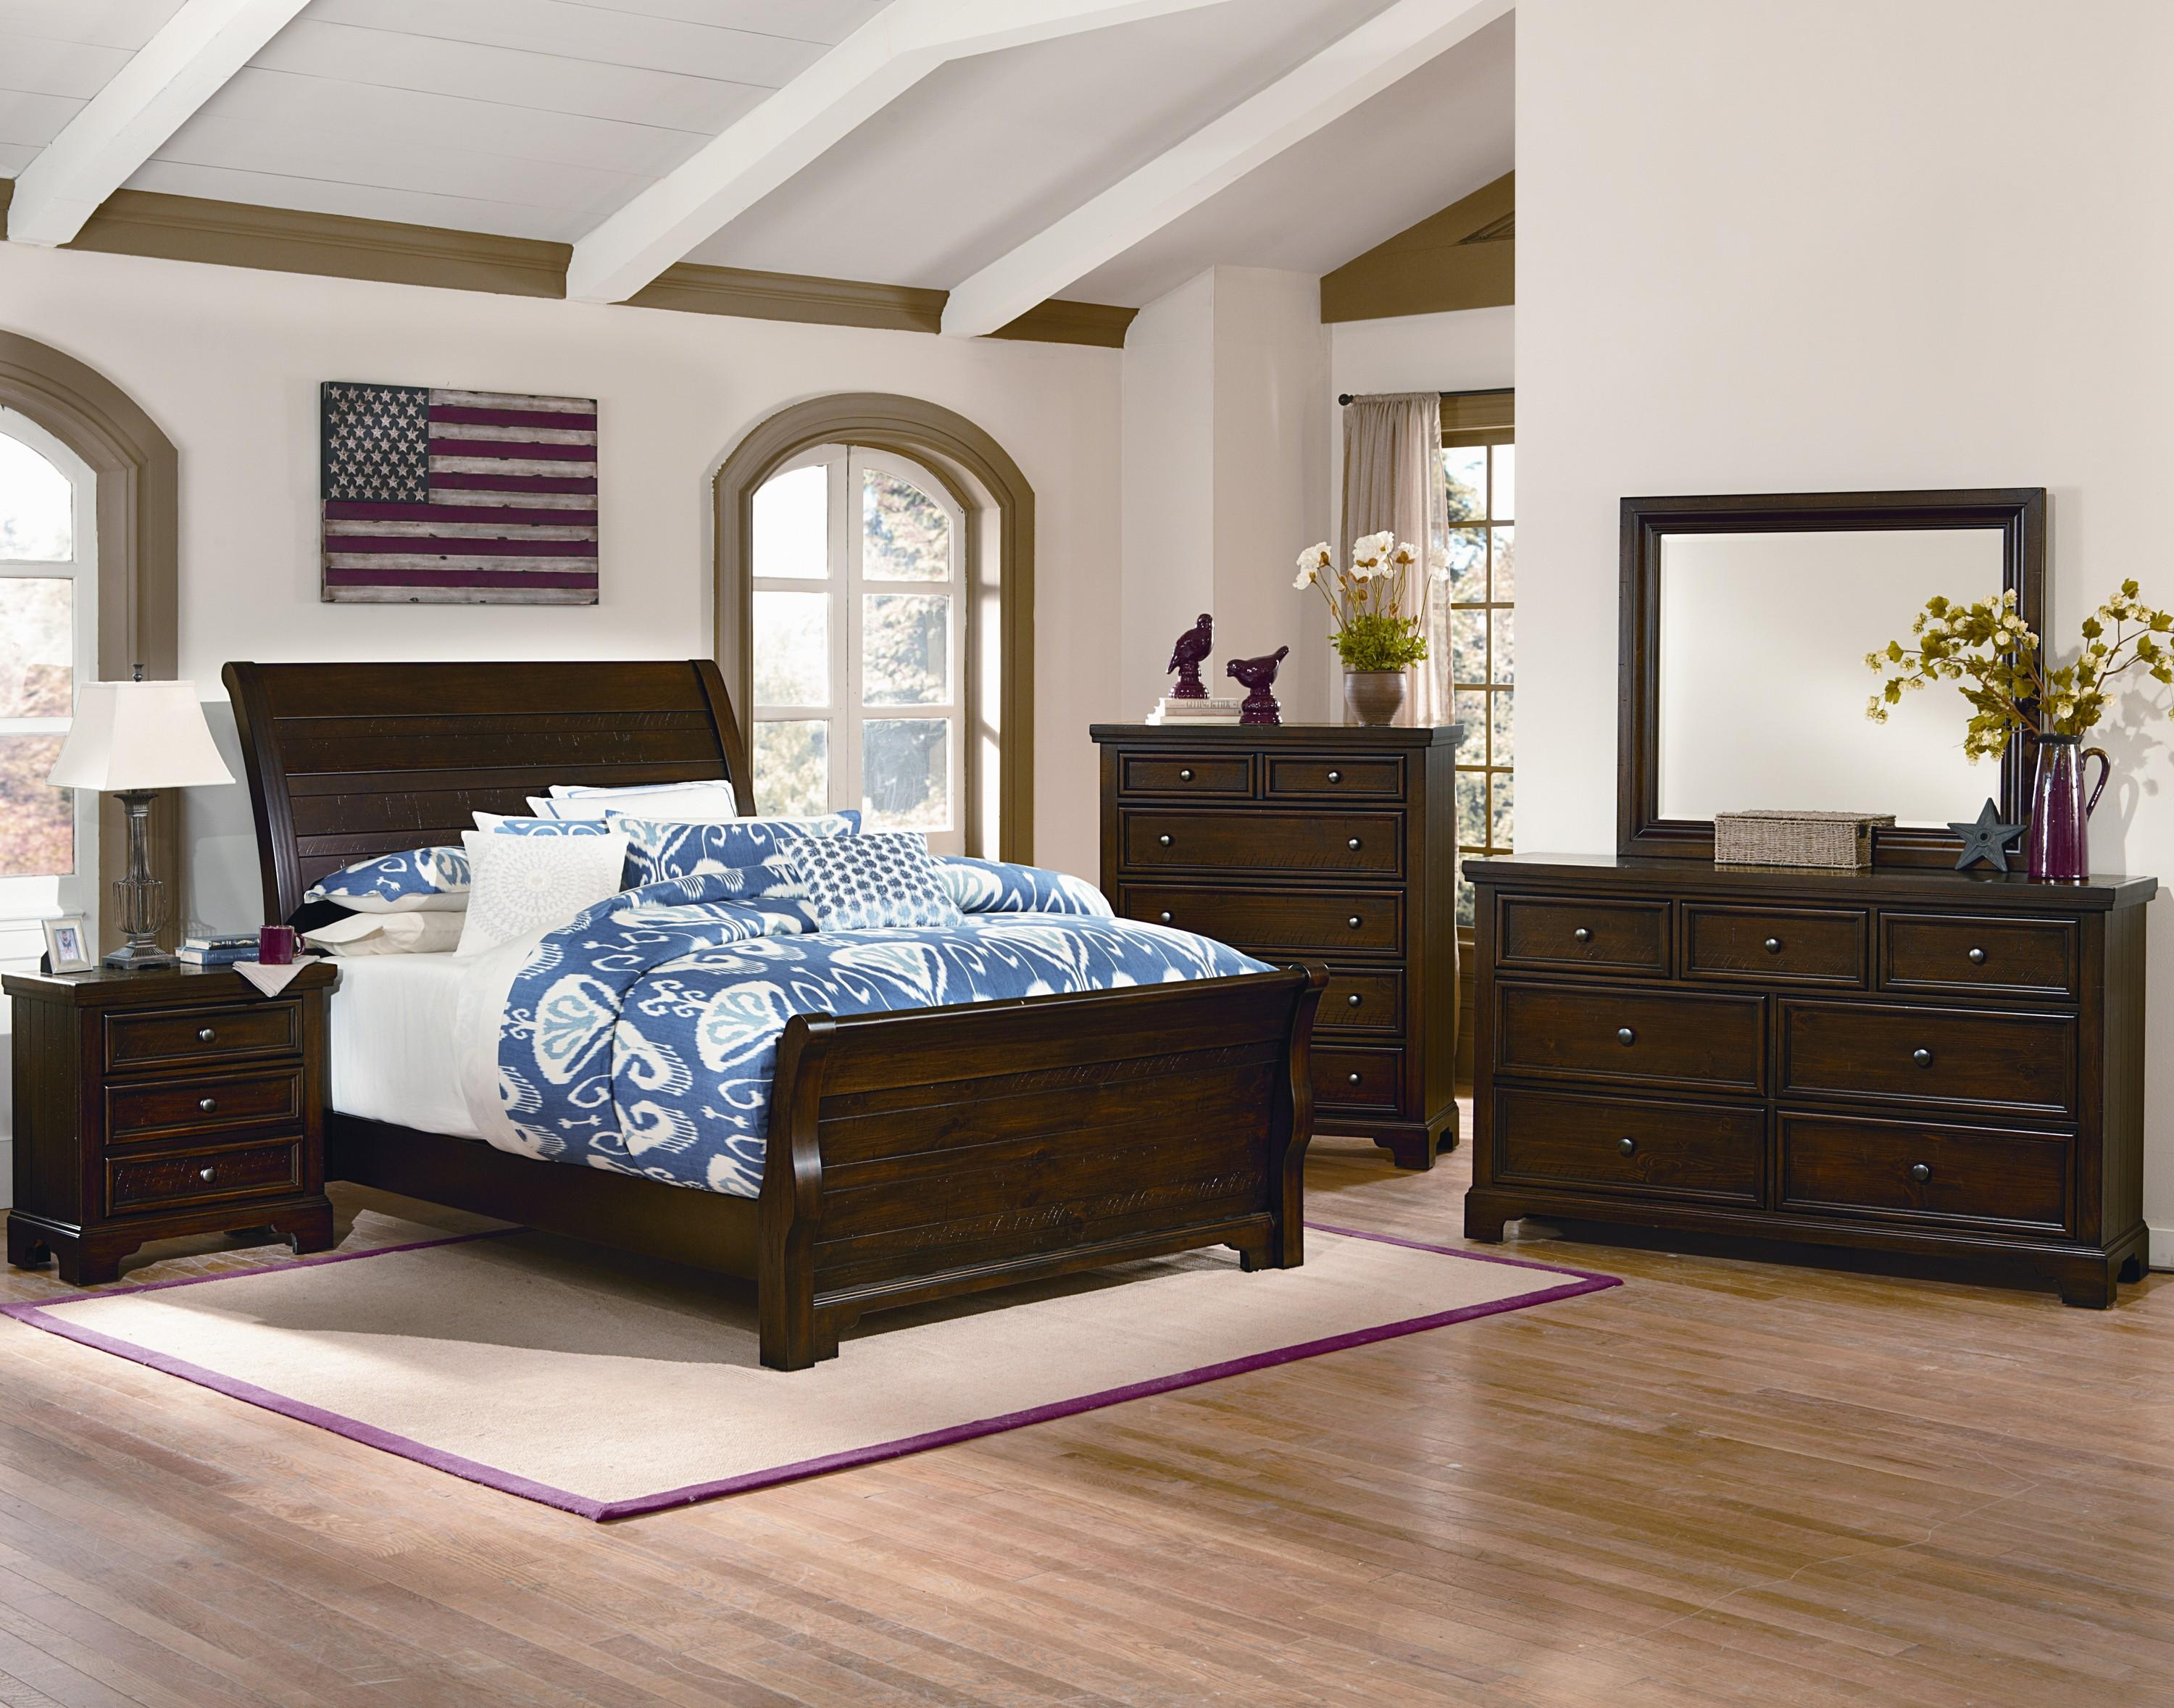 Storage Beds Edmonton Hanover 810 By Vaughan Bassett Hudson S Furniture Vaughan